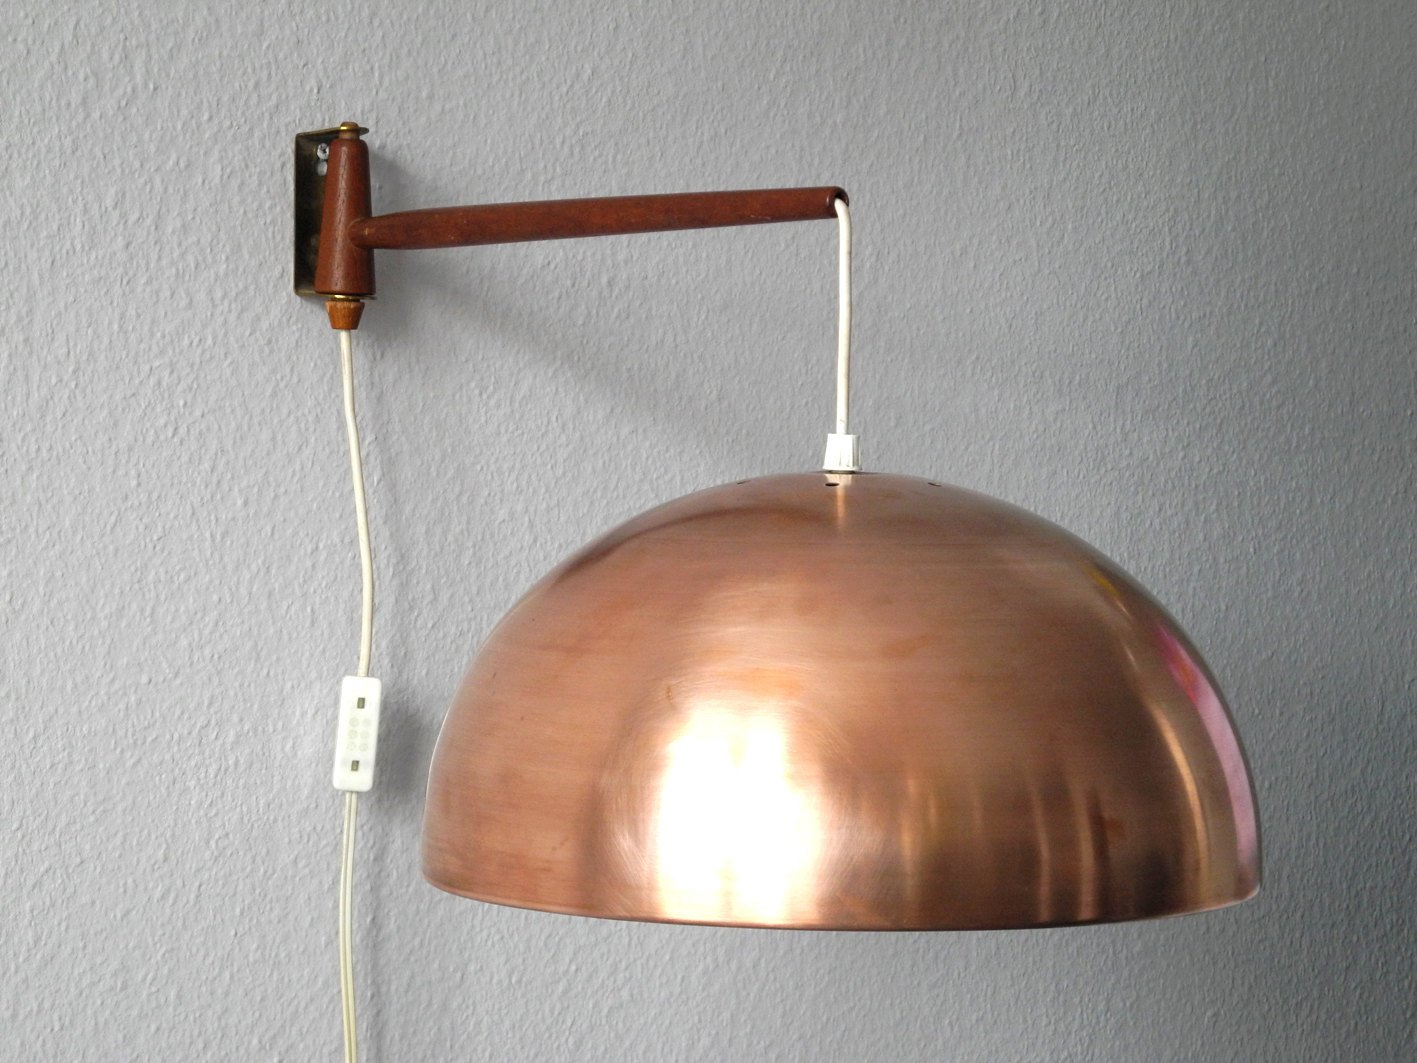 Wall Lamps Swivel : Teak & Brass Swivel Wall Lamp with Copper Shade, 1960s for sale at Pamono